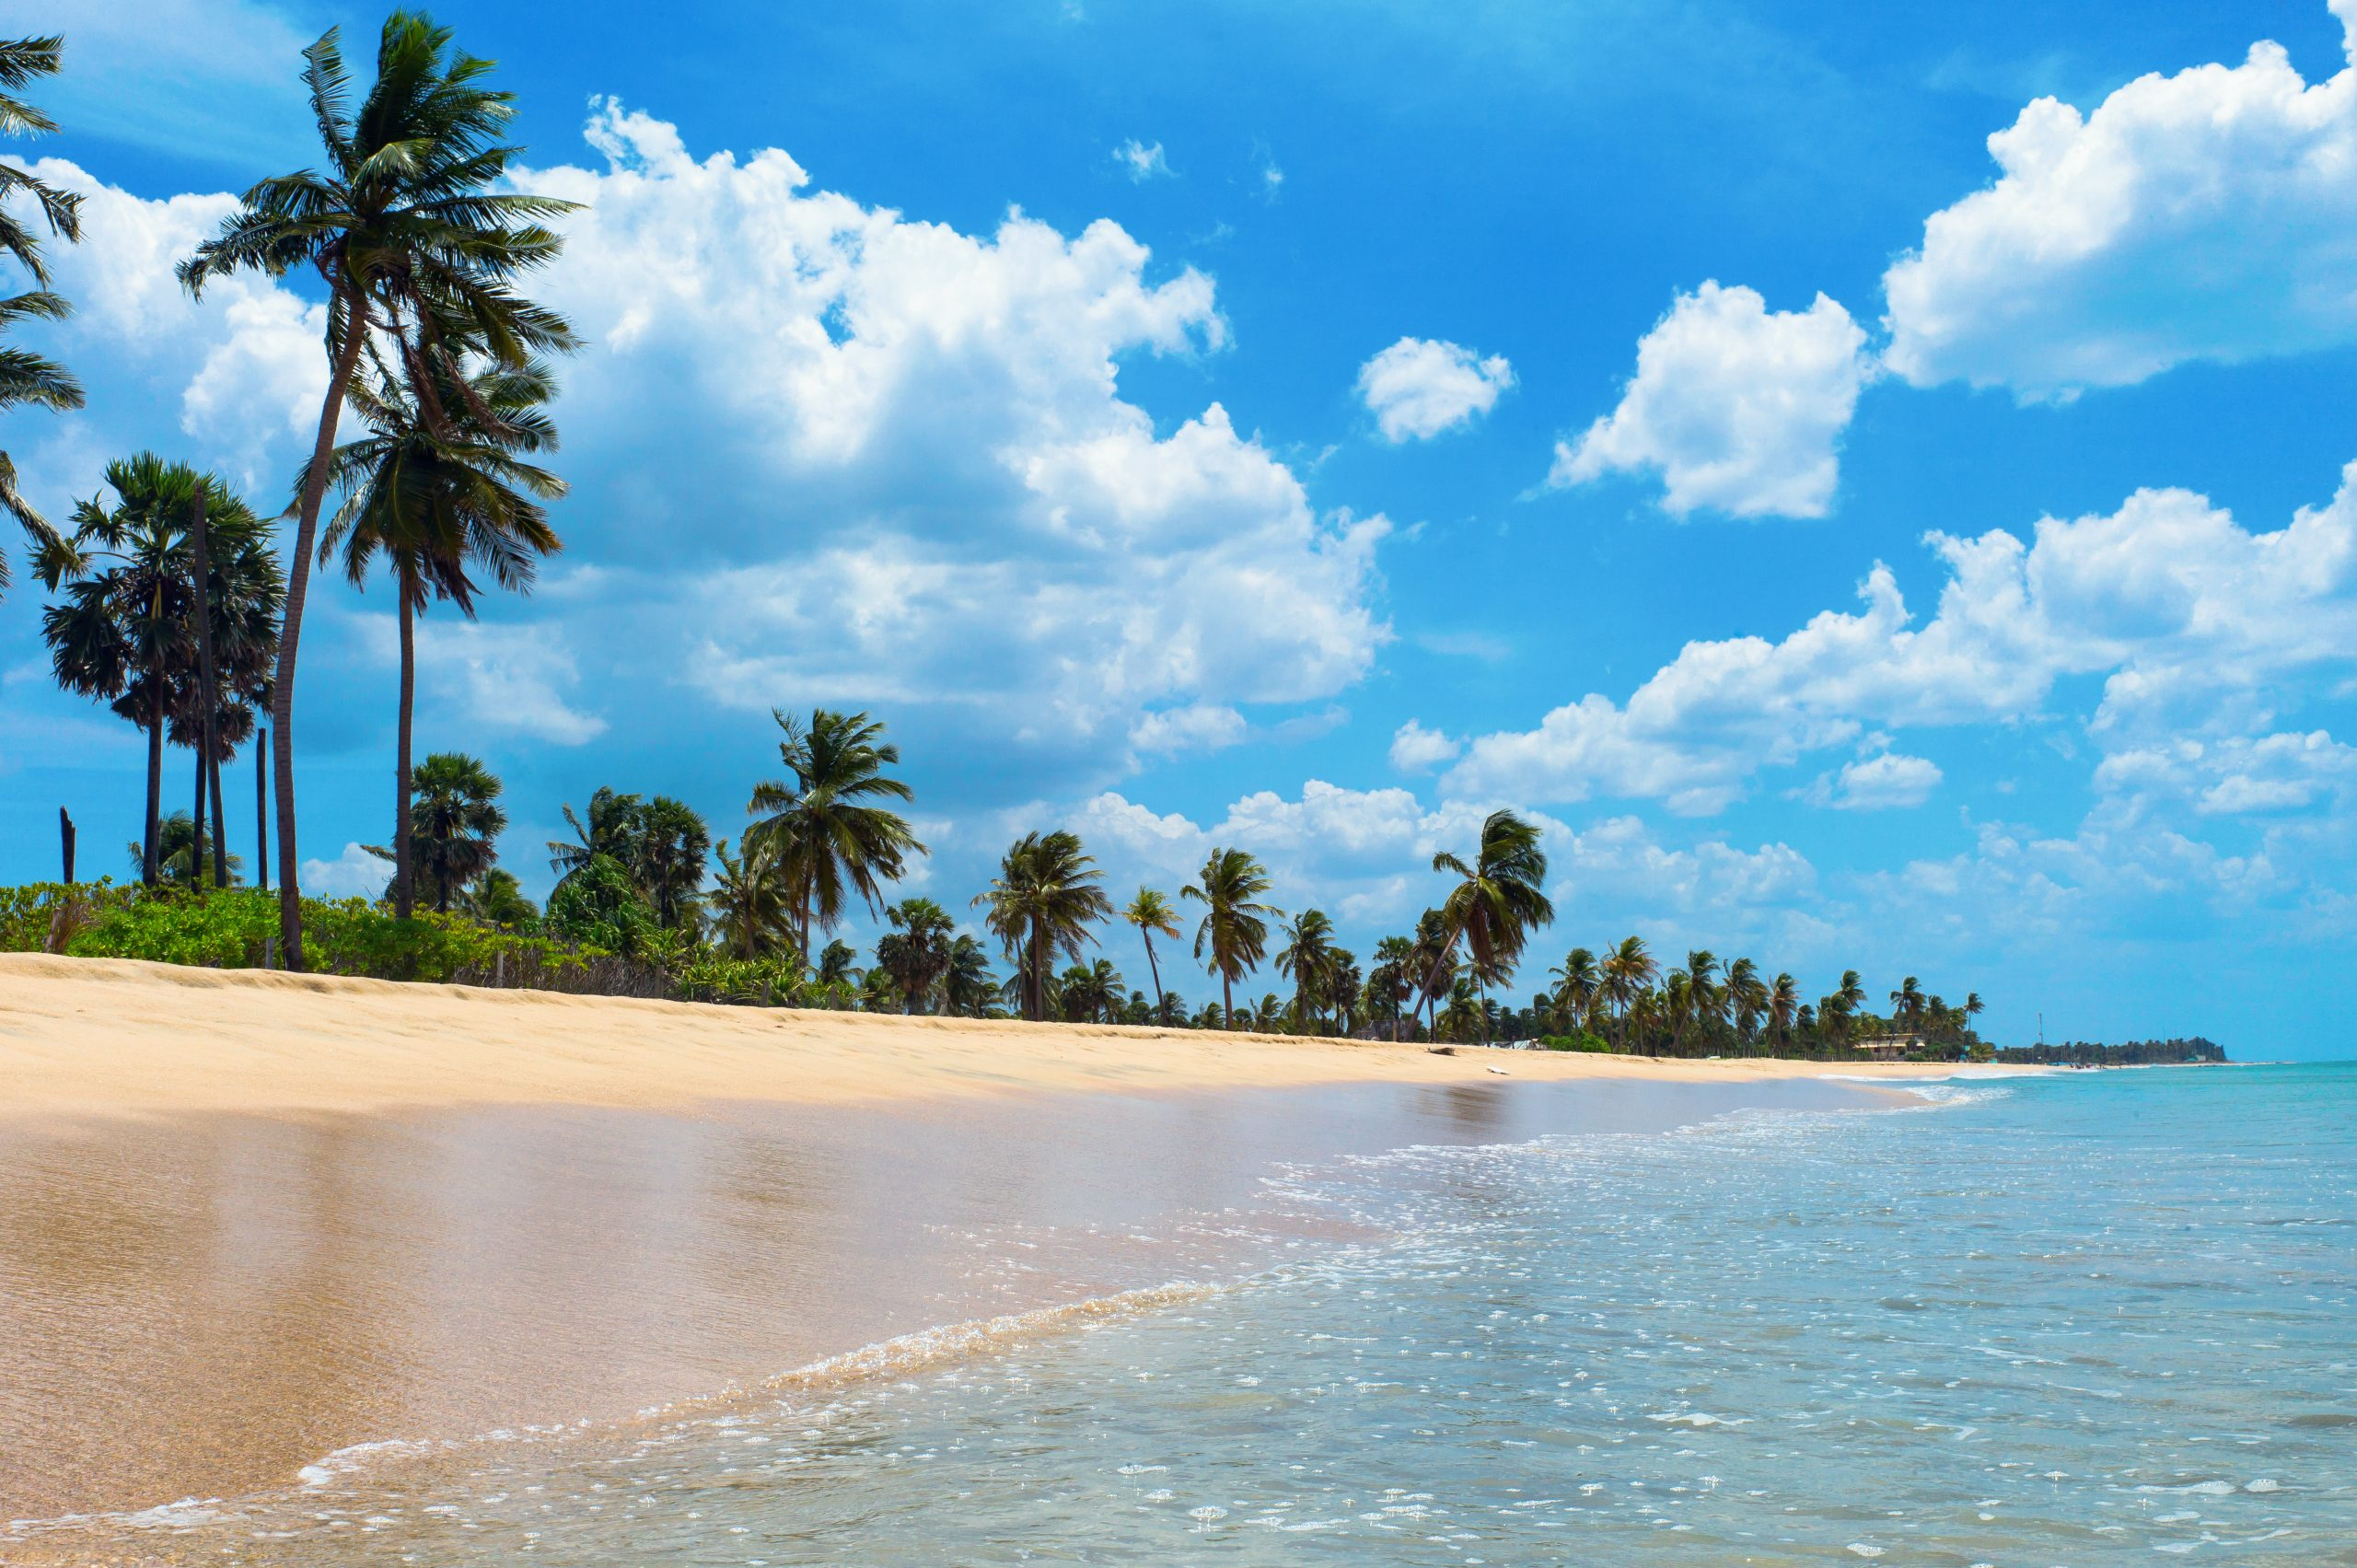 view of clear white sand beach with palm trees in Trincomalee